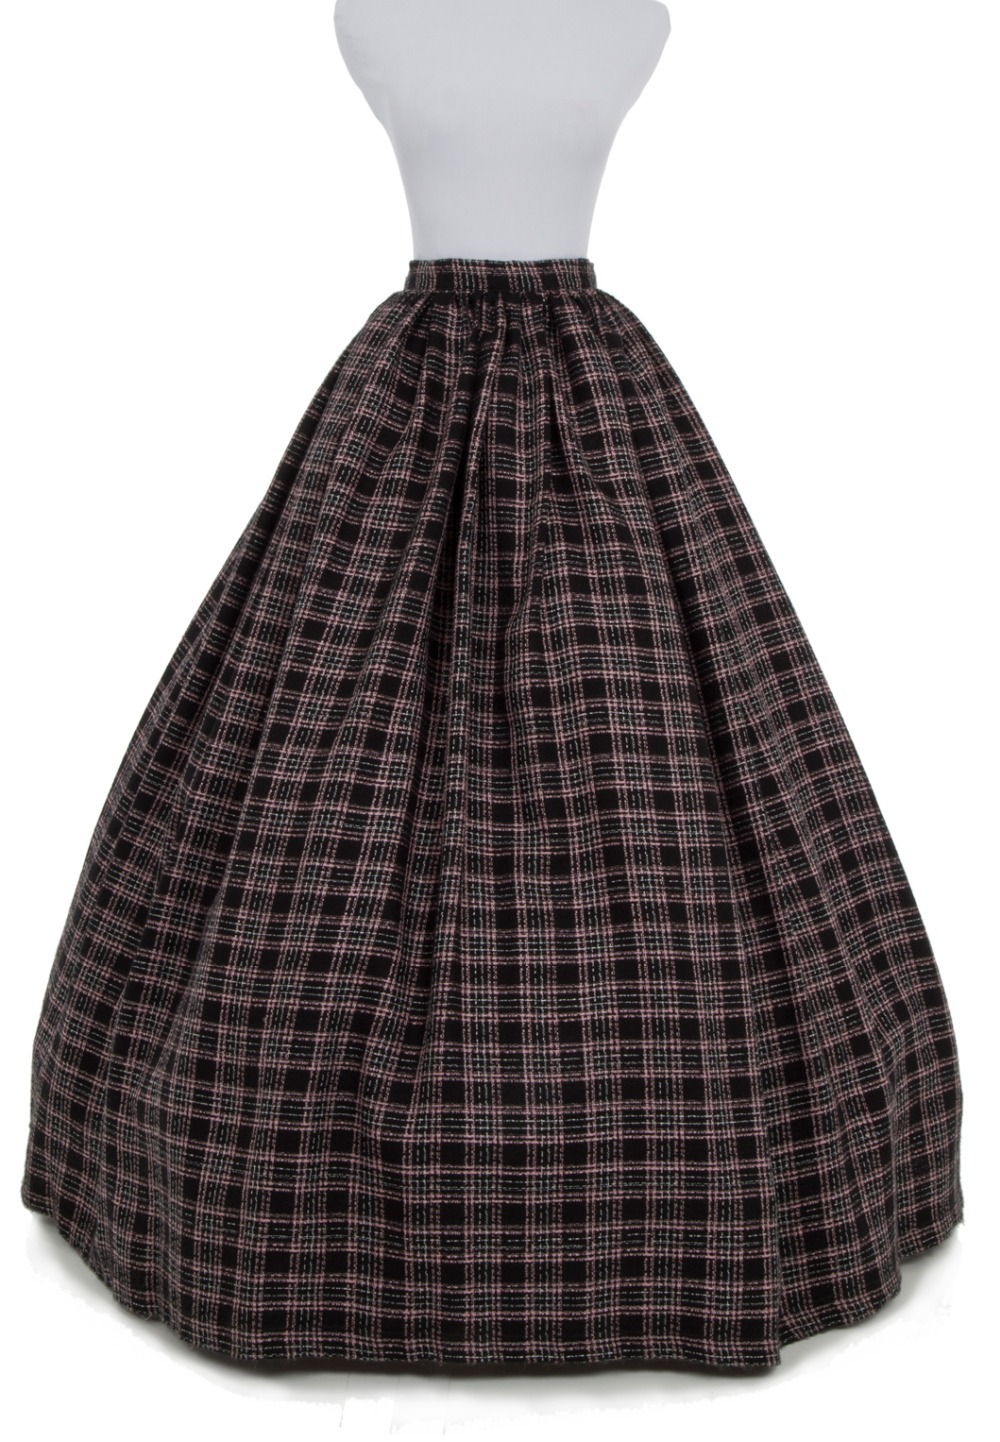 Plaid Fashion Microfiber Wool Floor-Length Shipping Long Victorian Skirts Ball Gown Skirt